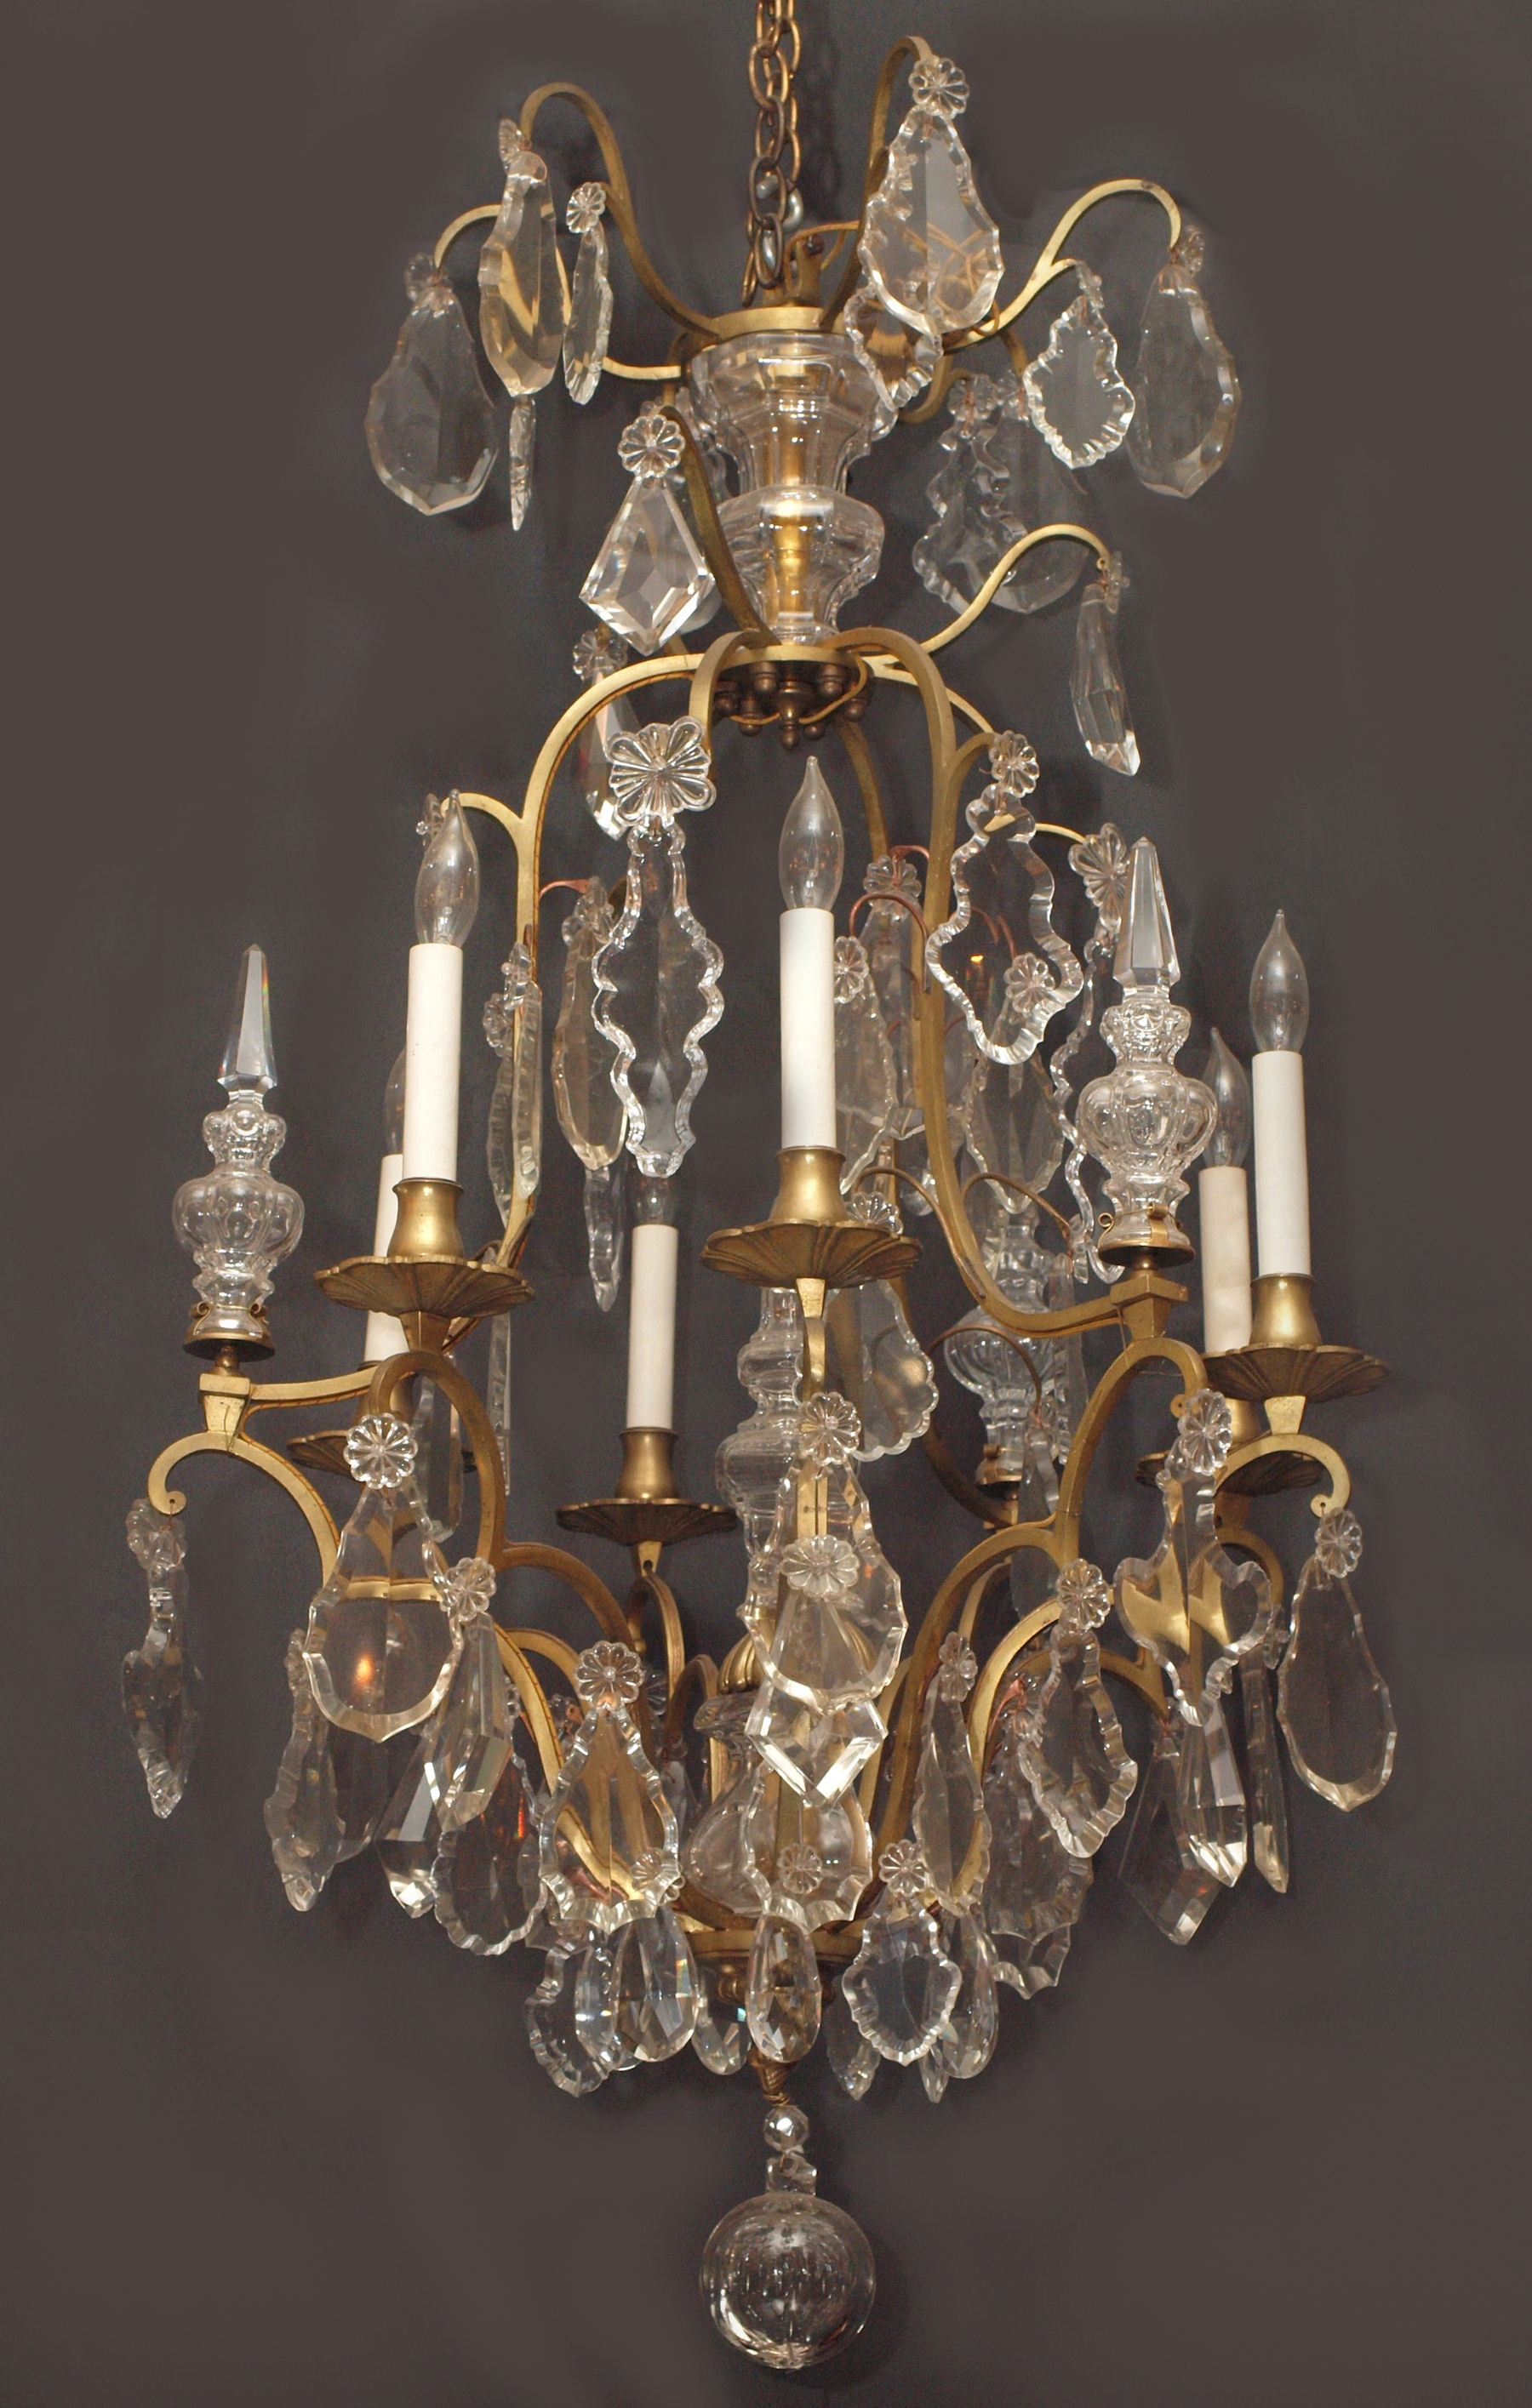 Antiques Classifieds Antiques Antique Lamps And Lighting With Antique French Chandeliers (Image 6 of 15)